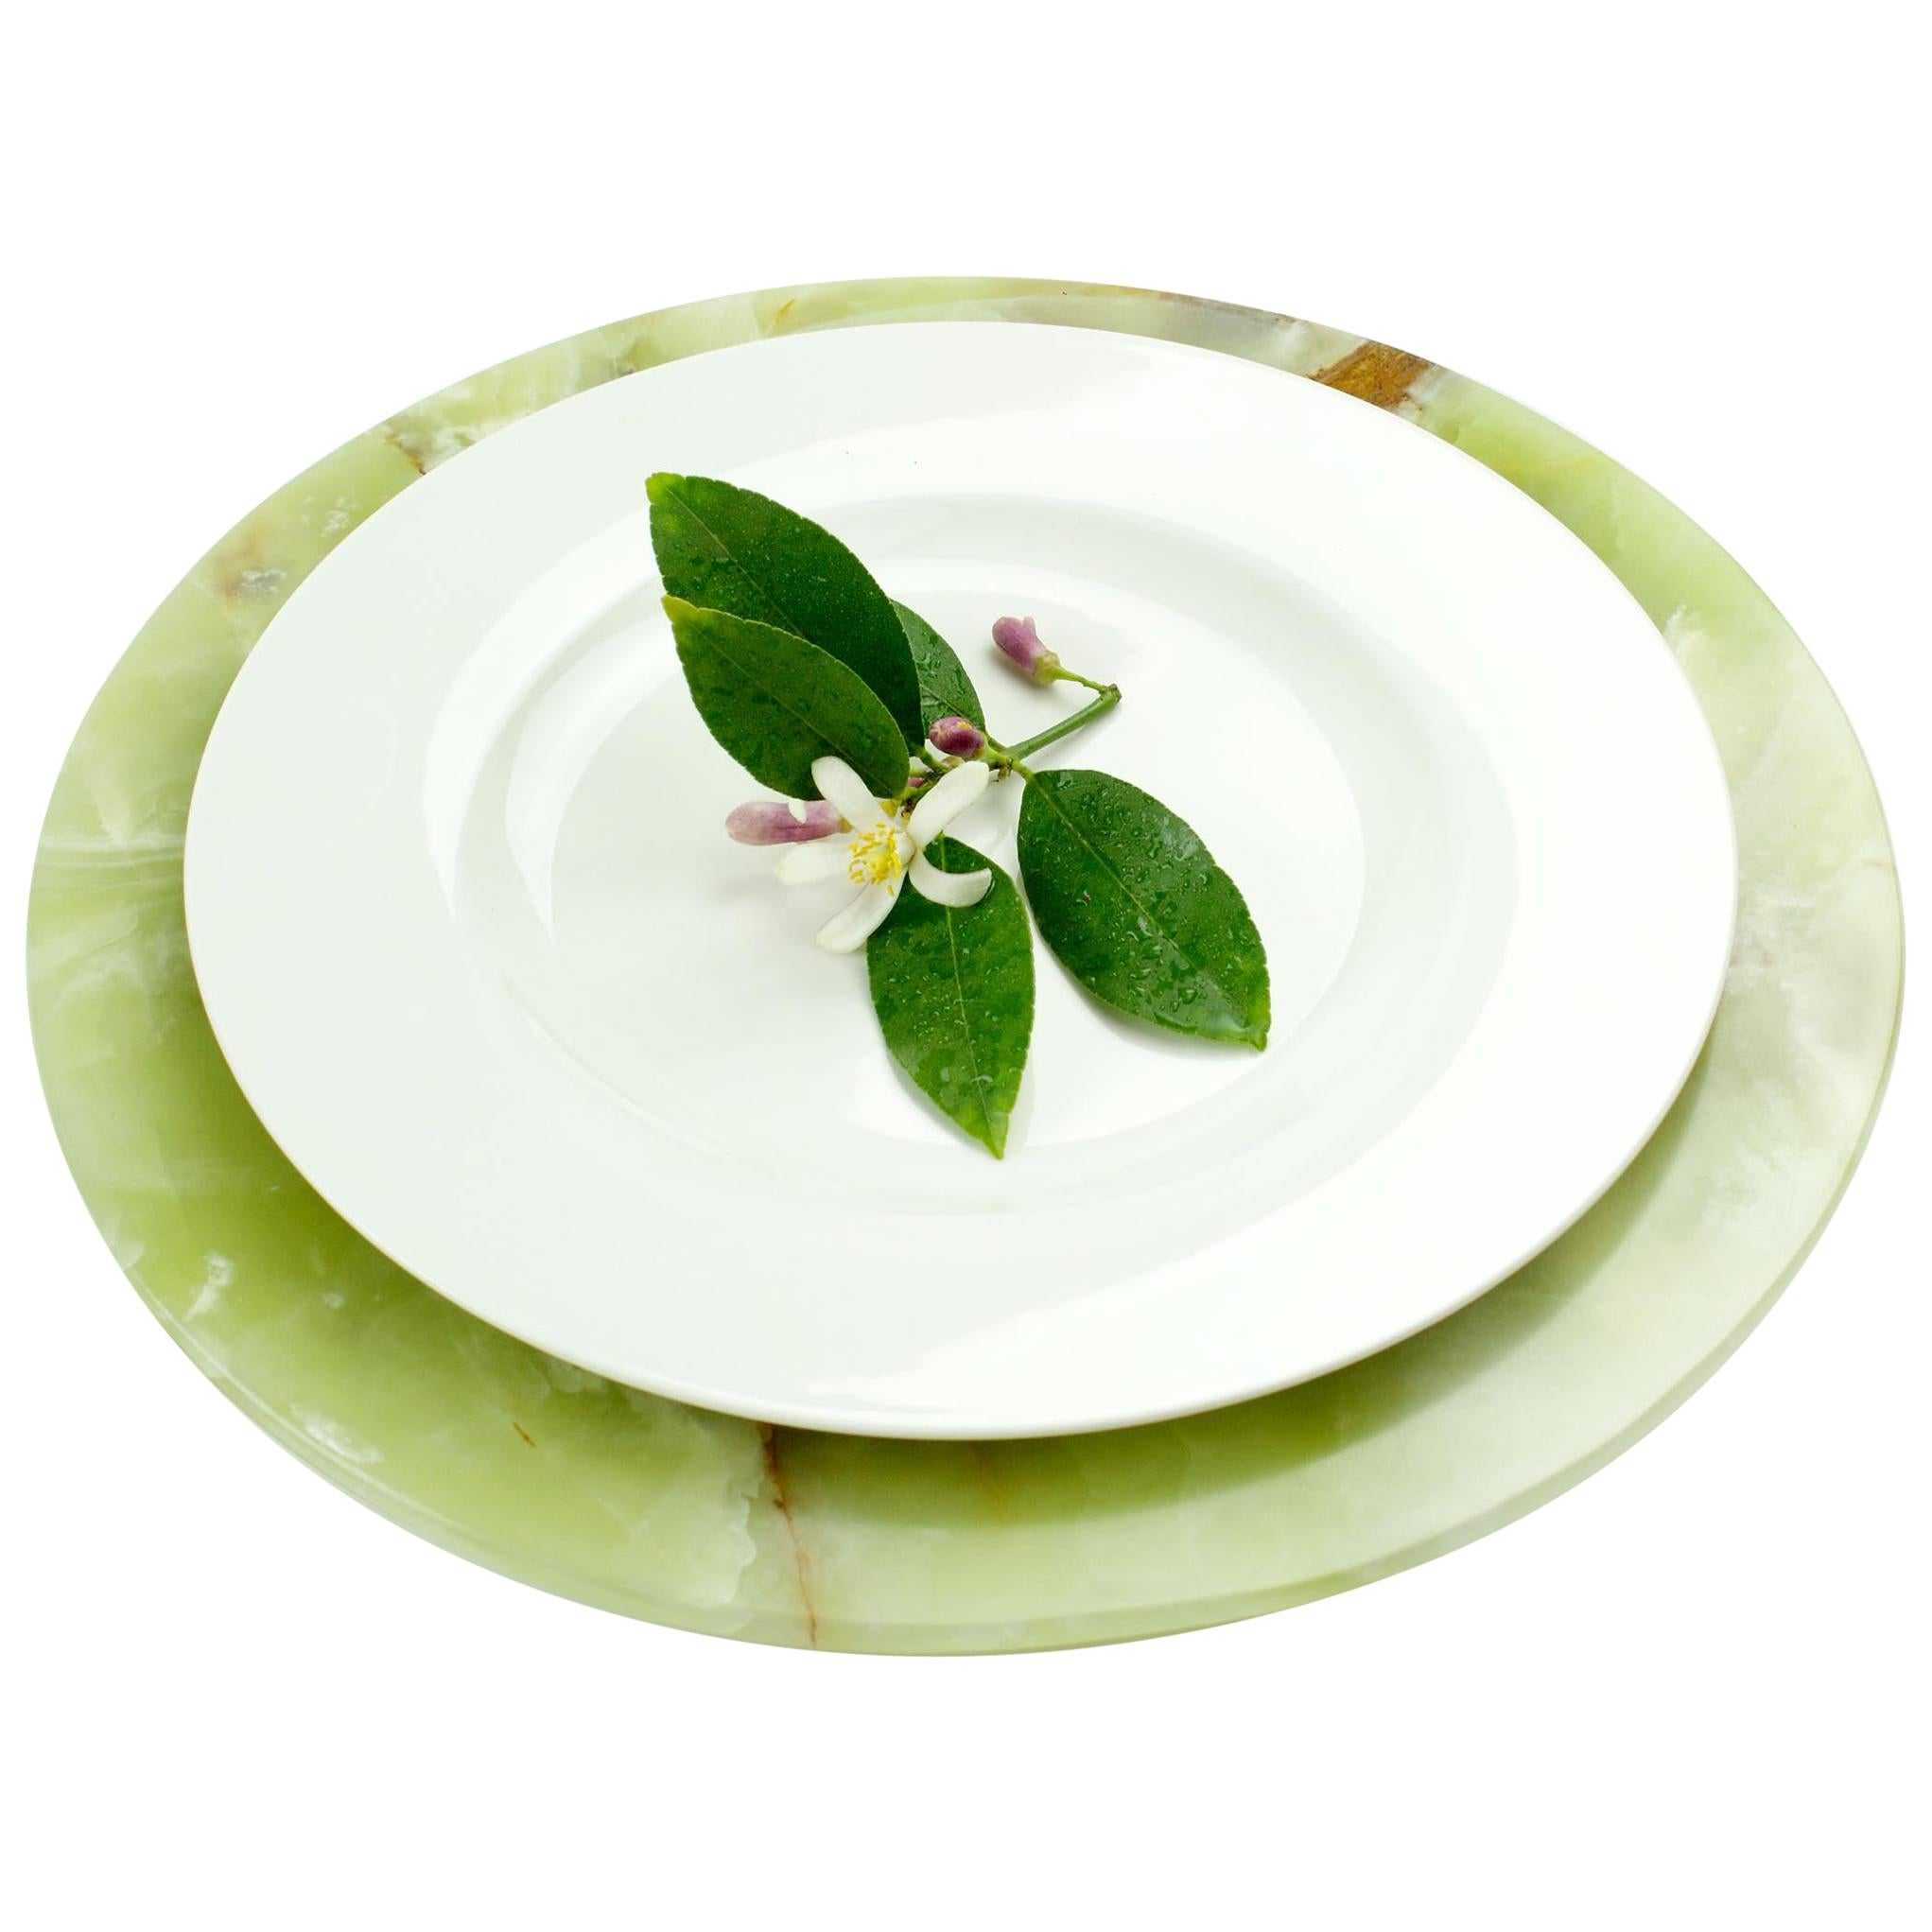 Set of 4 Charger Plates in Solid Green Onyx Design by Pieruga Marble, Italy